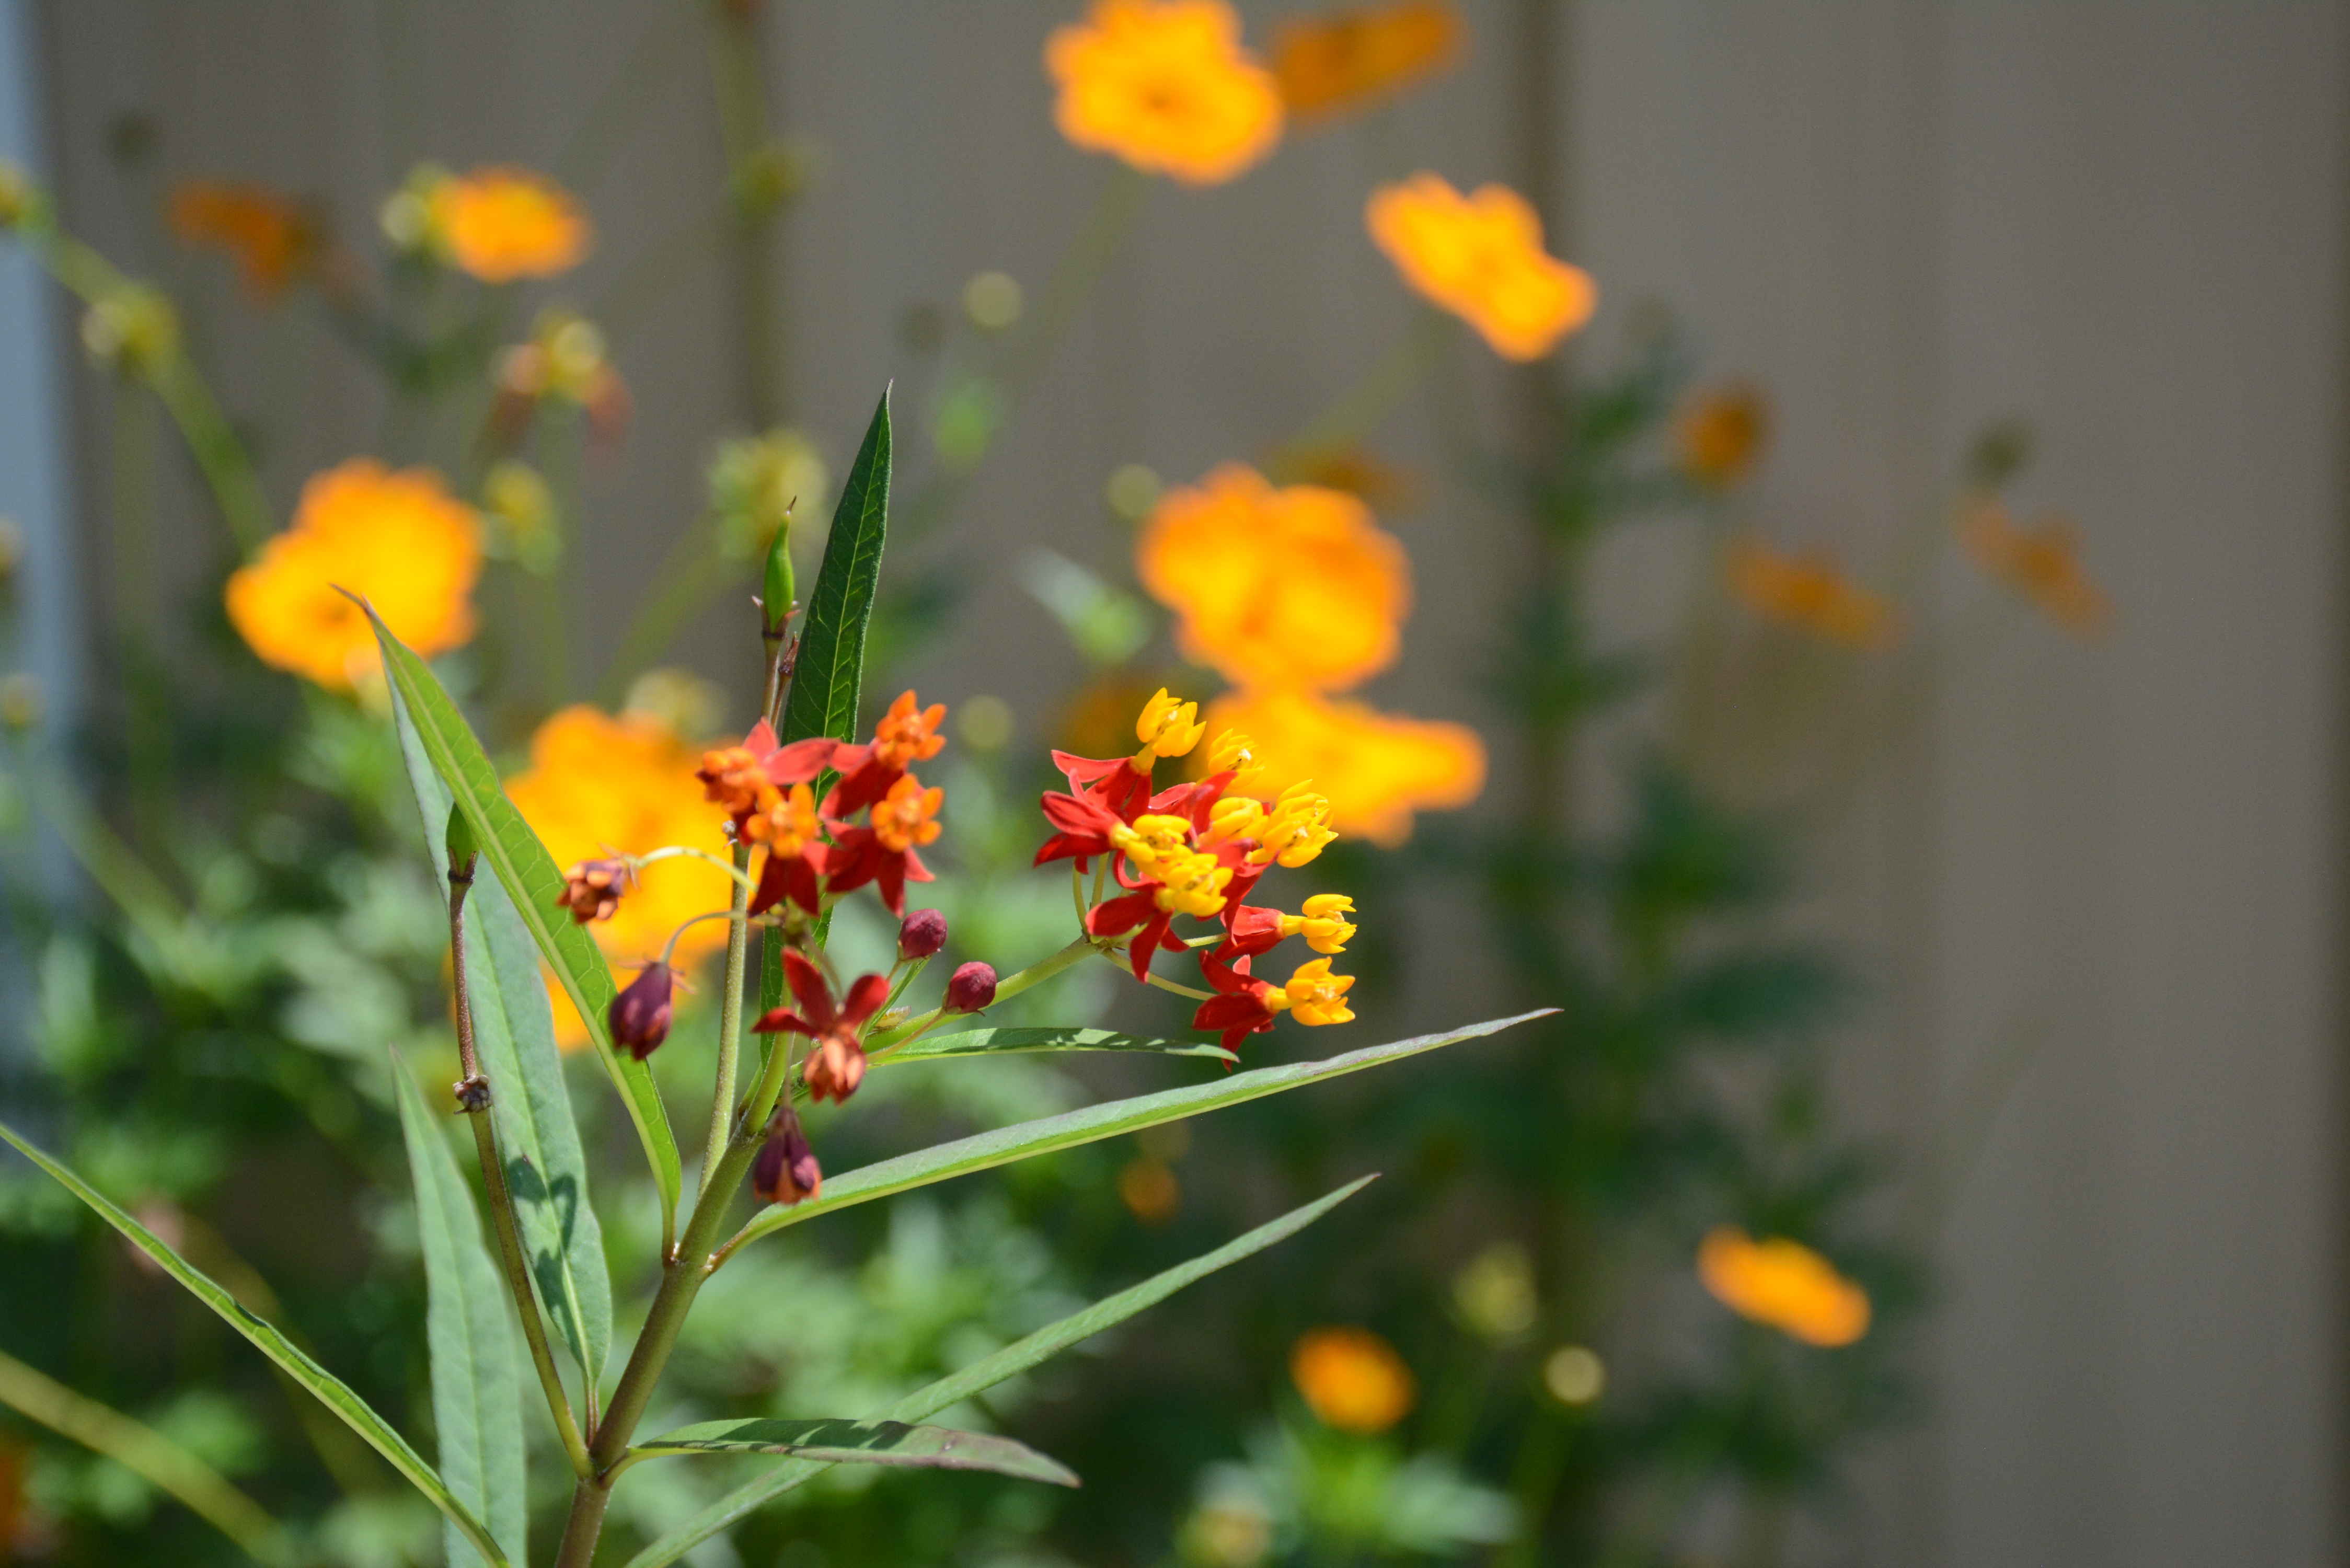 A closeup of tropical milkweed, which has bright red, orange, yellow and purple blooms. Another species of yellow flower is visible in the background.